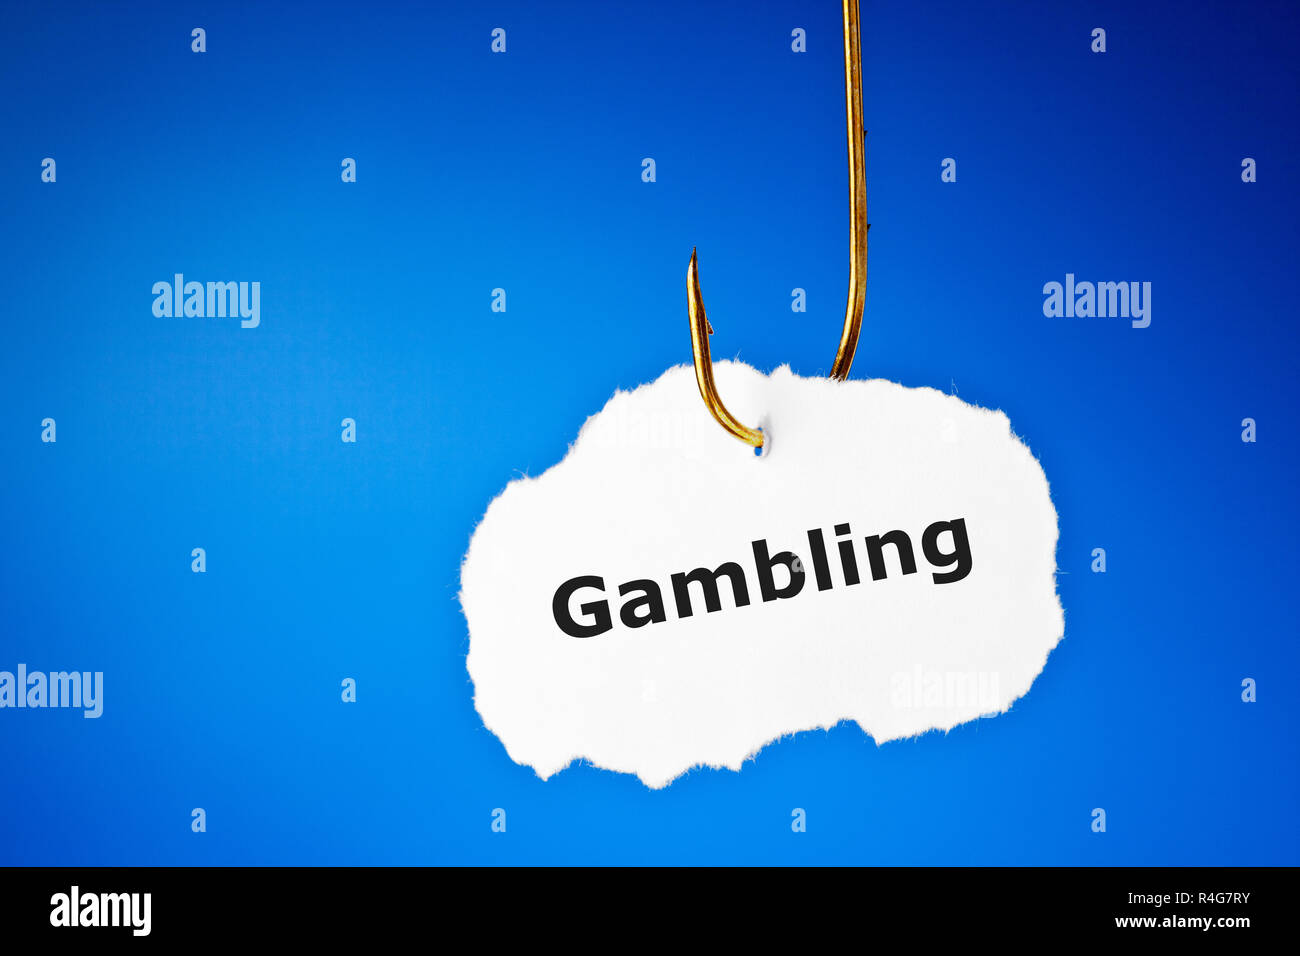 Hooked On Gambling Concept - Stock Image